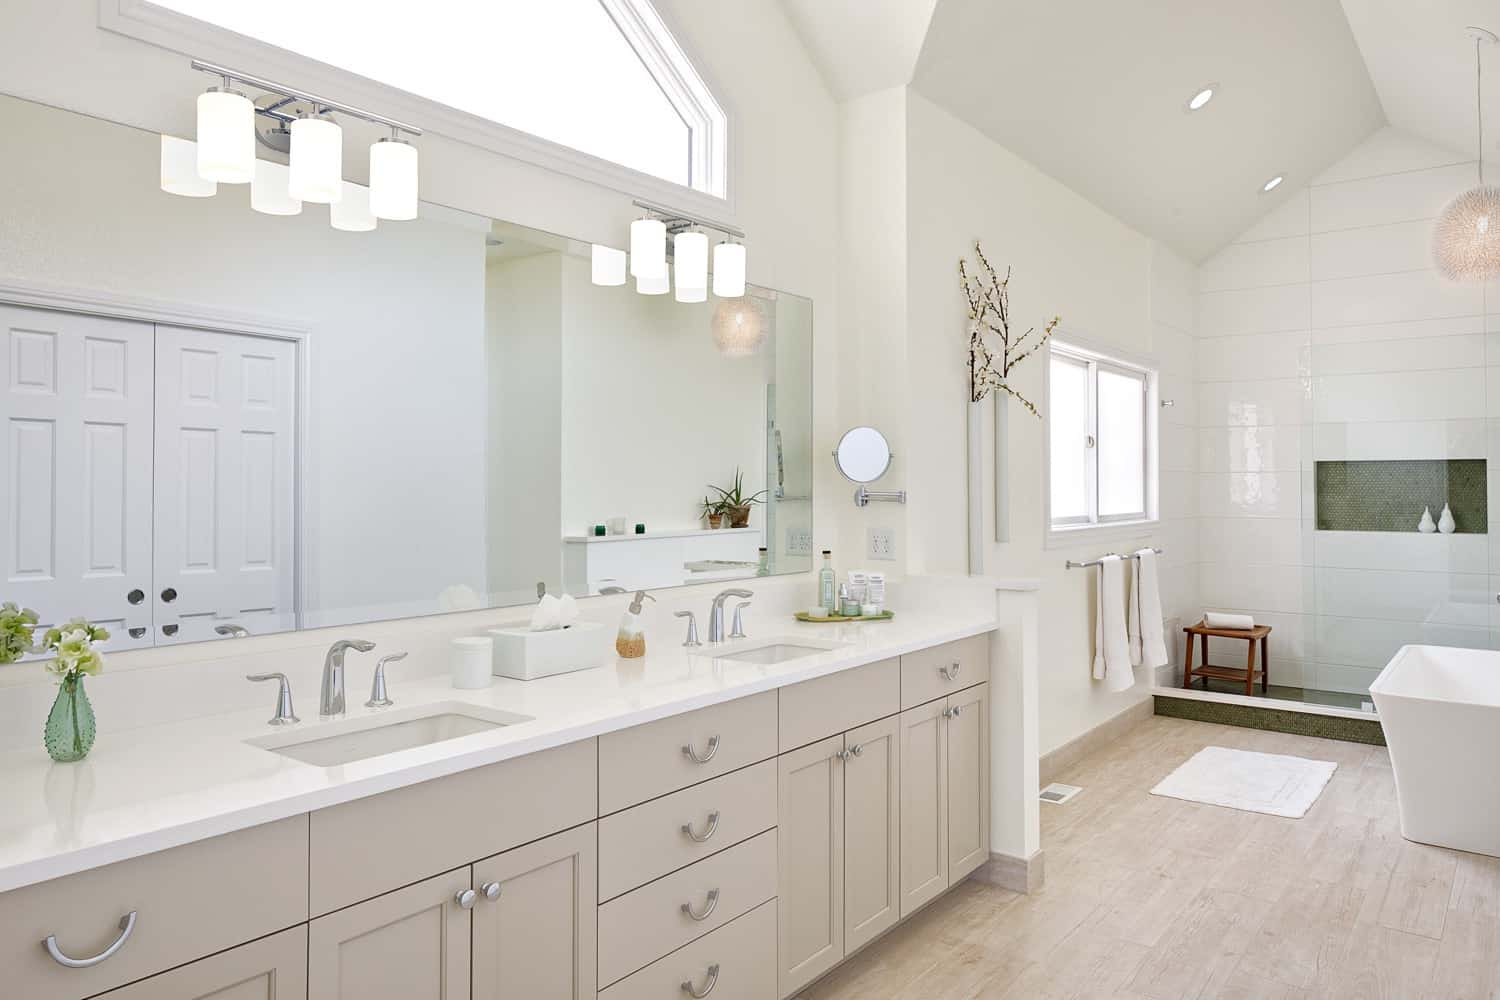 Melton Design Build - Louisville Remodel - Master Bathroom Overall